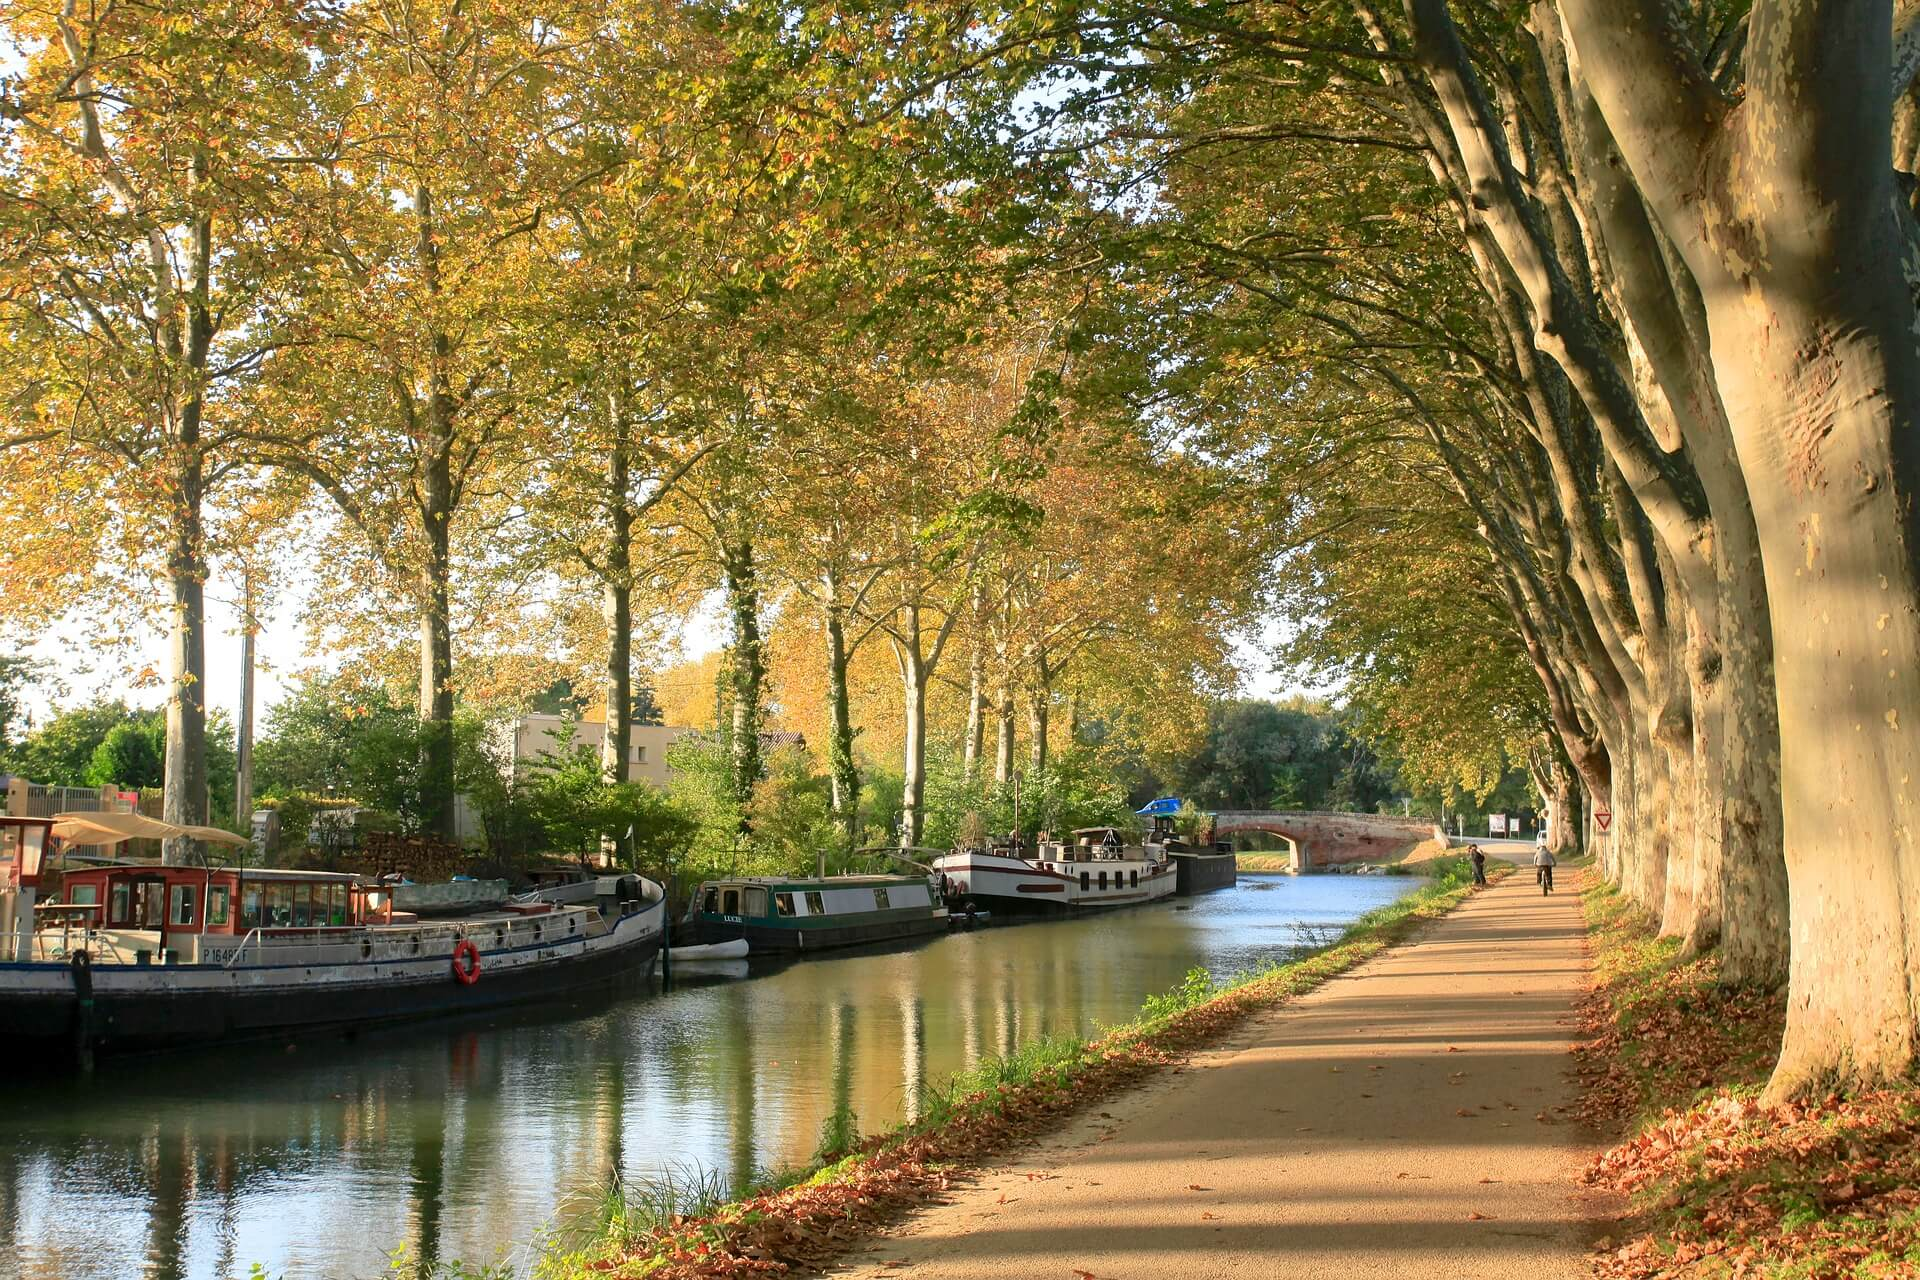 canal-du-midi-agence-de-location-de-van--toulouse-freed-home-camper